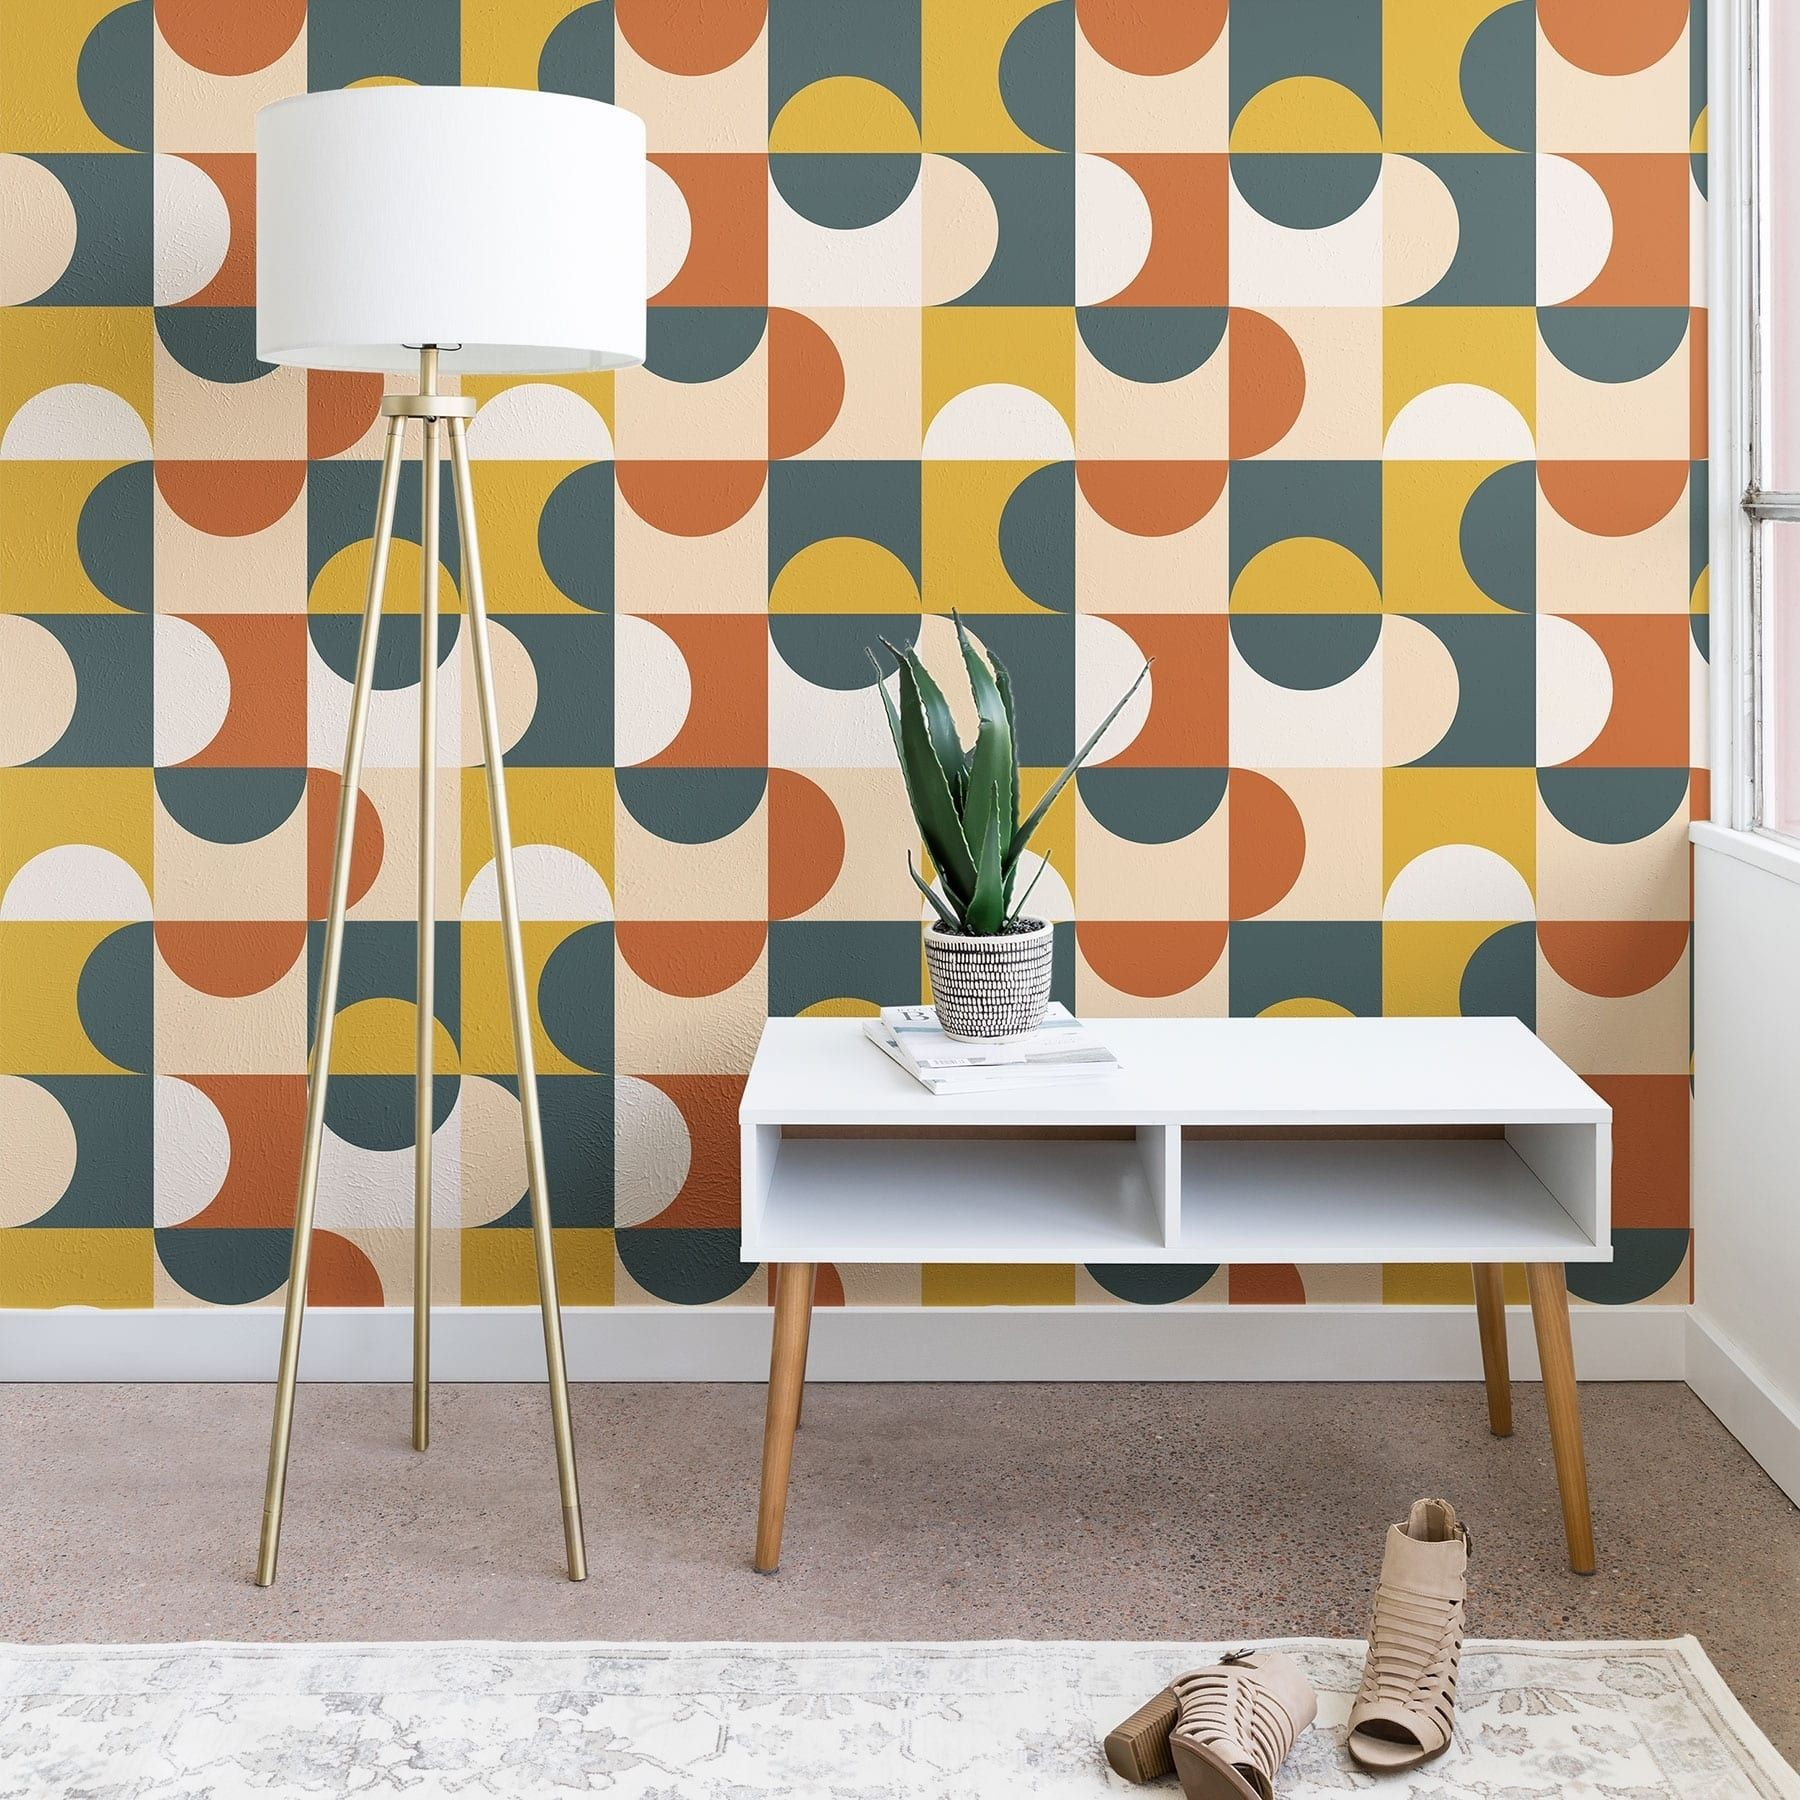 Our Best Wall Coverings Deals | Mid century modern ...